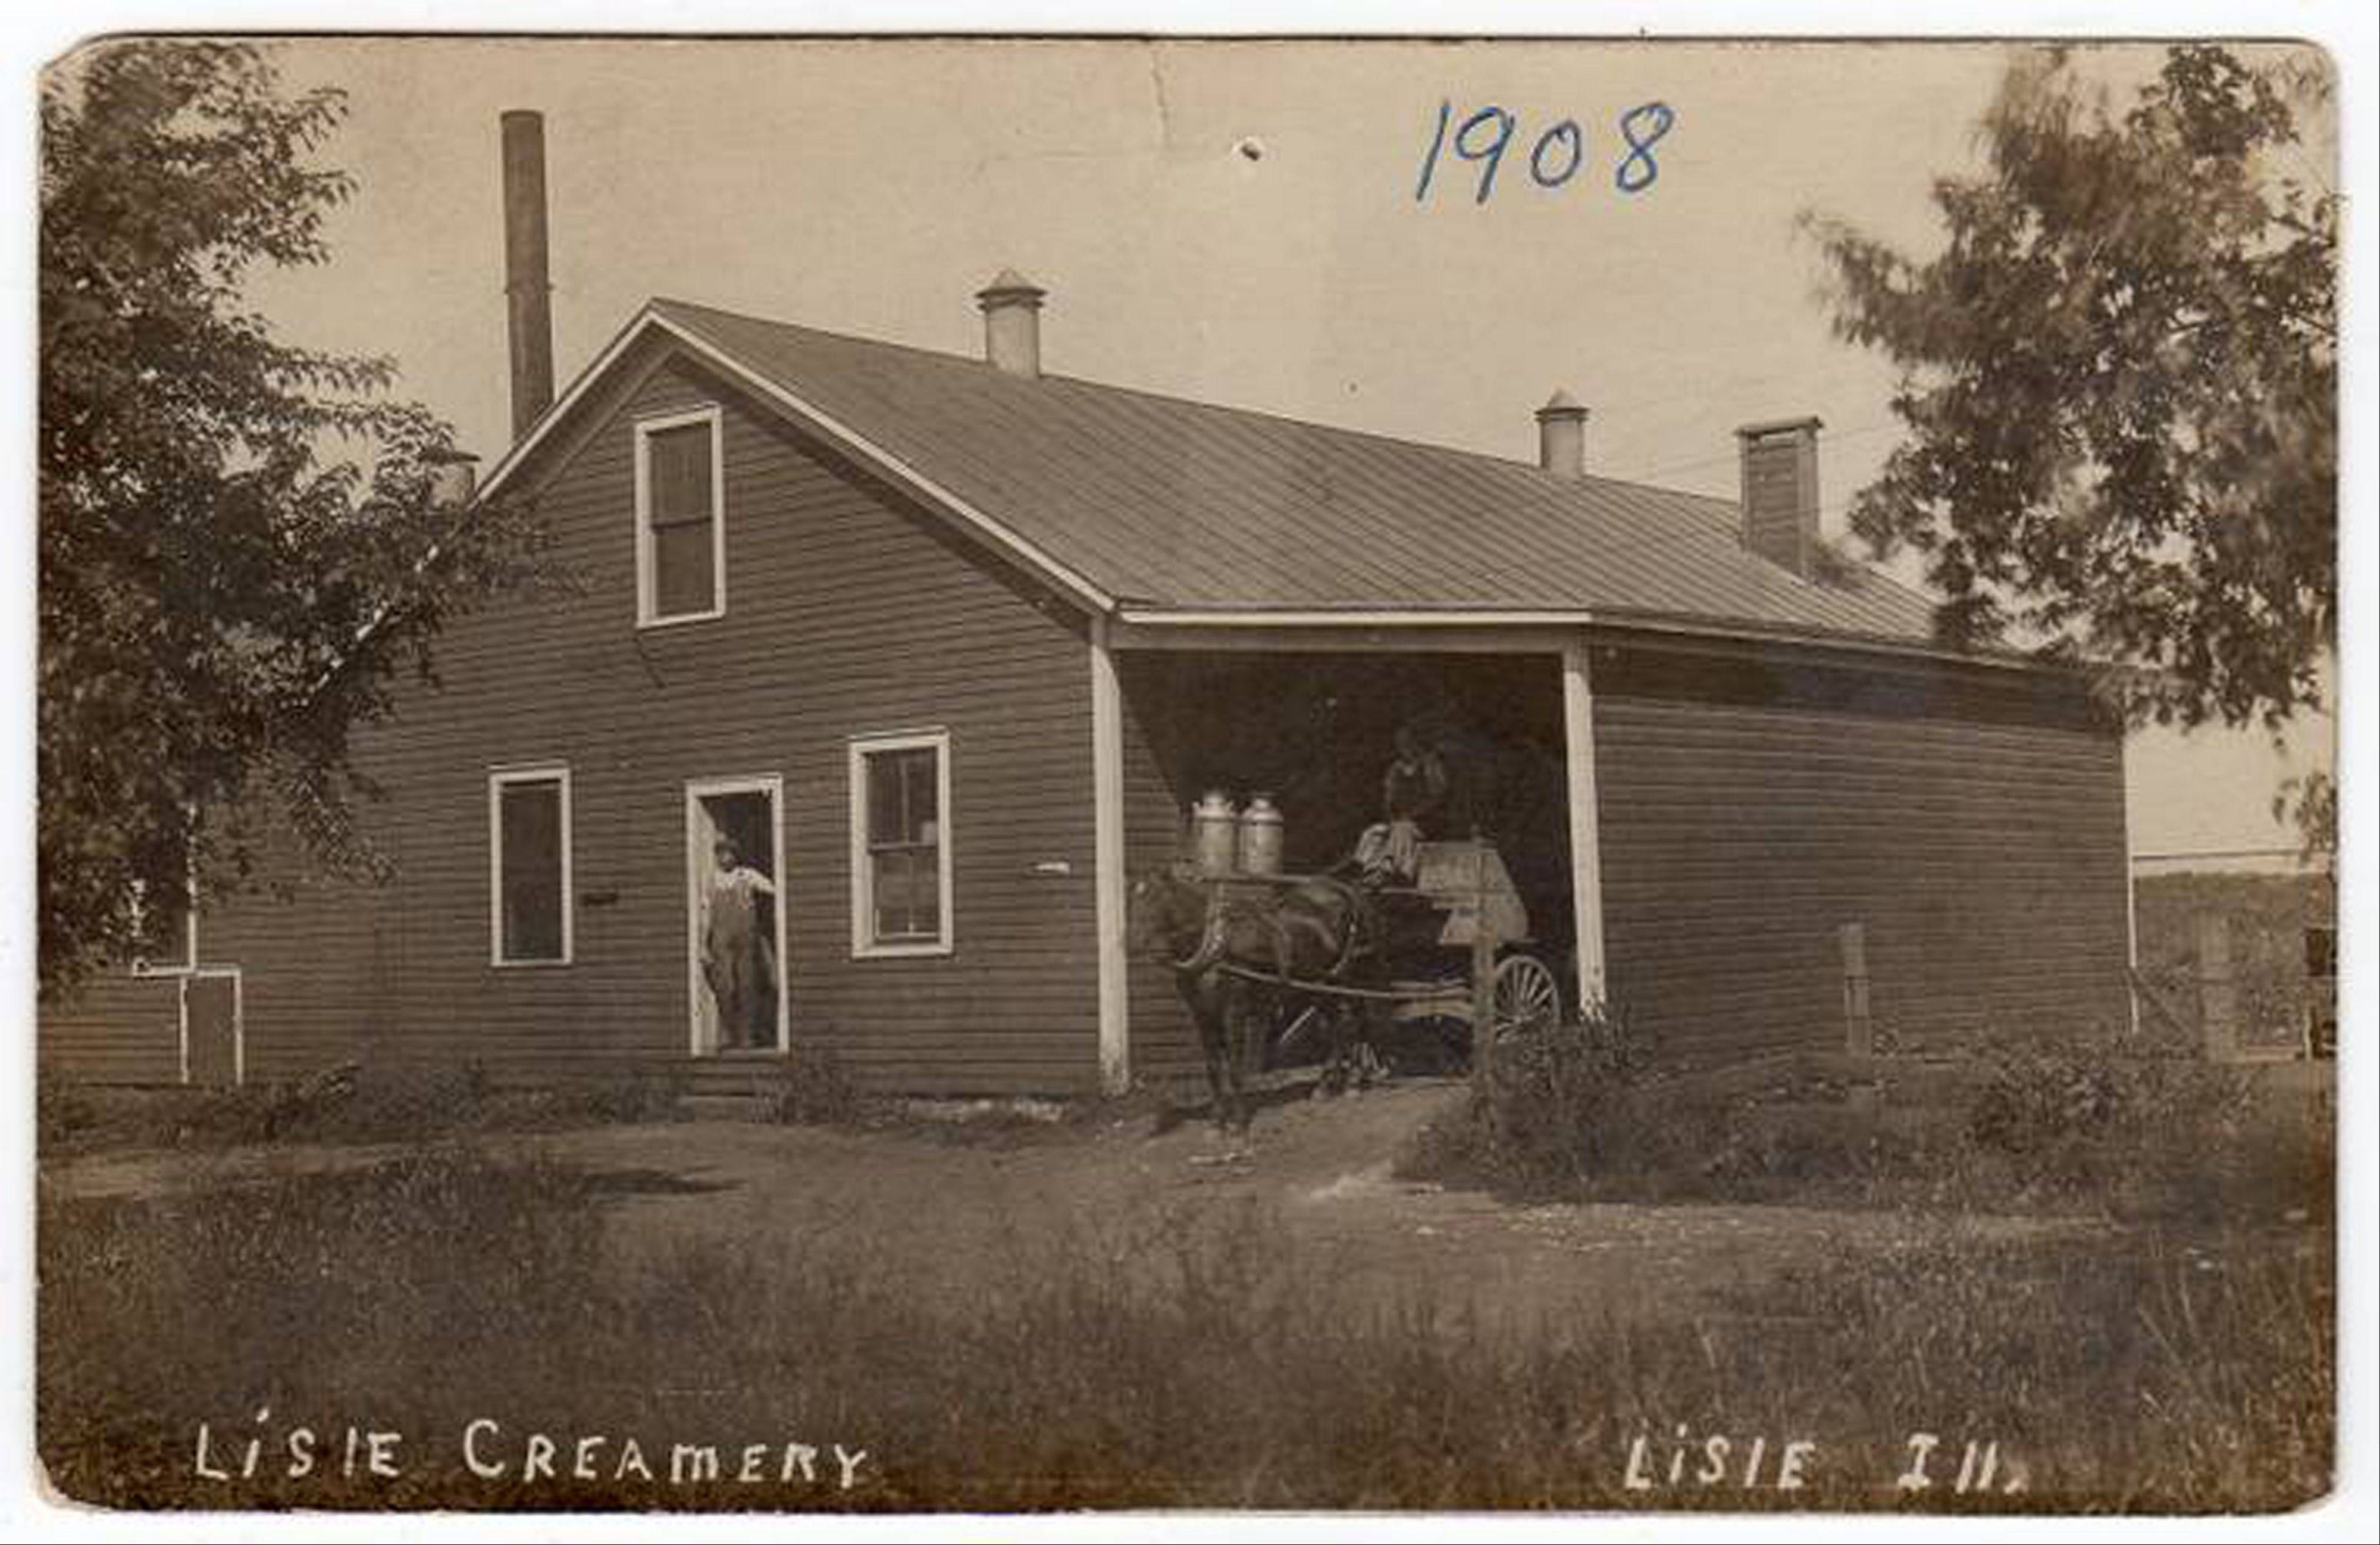 The thriving Lisle Creamery shown on this 1908 postcard sent milk by train to Chicago and put Lisle on the map.